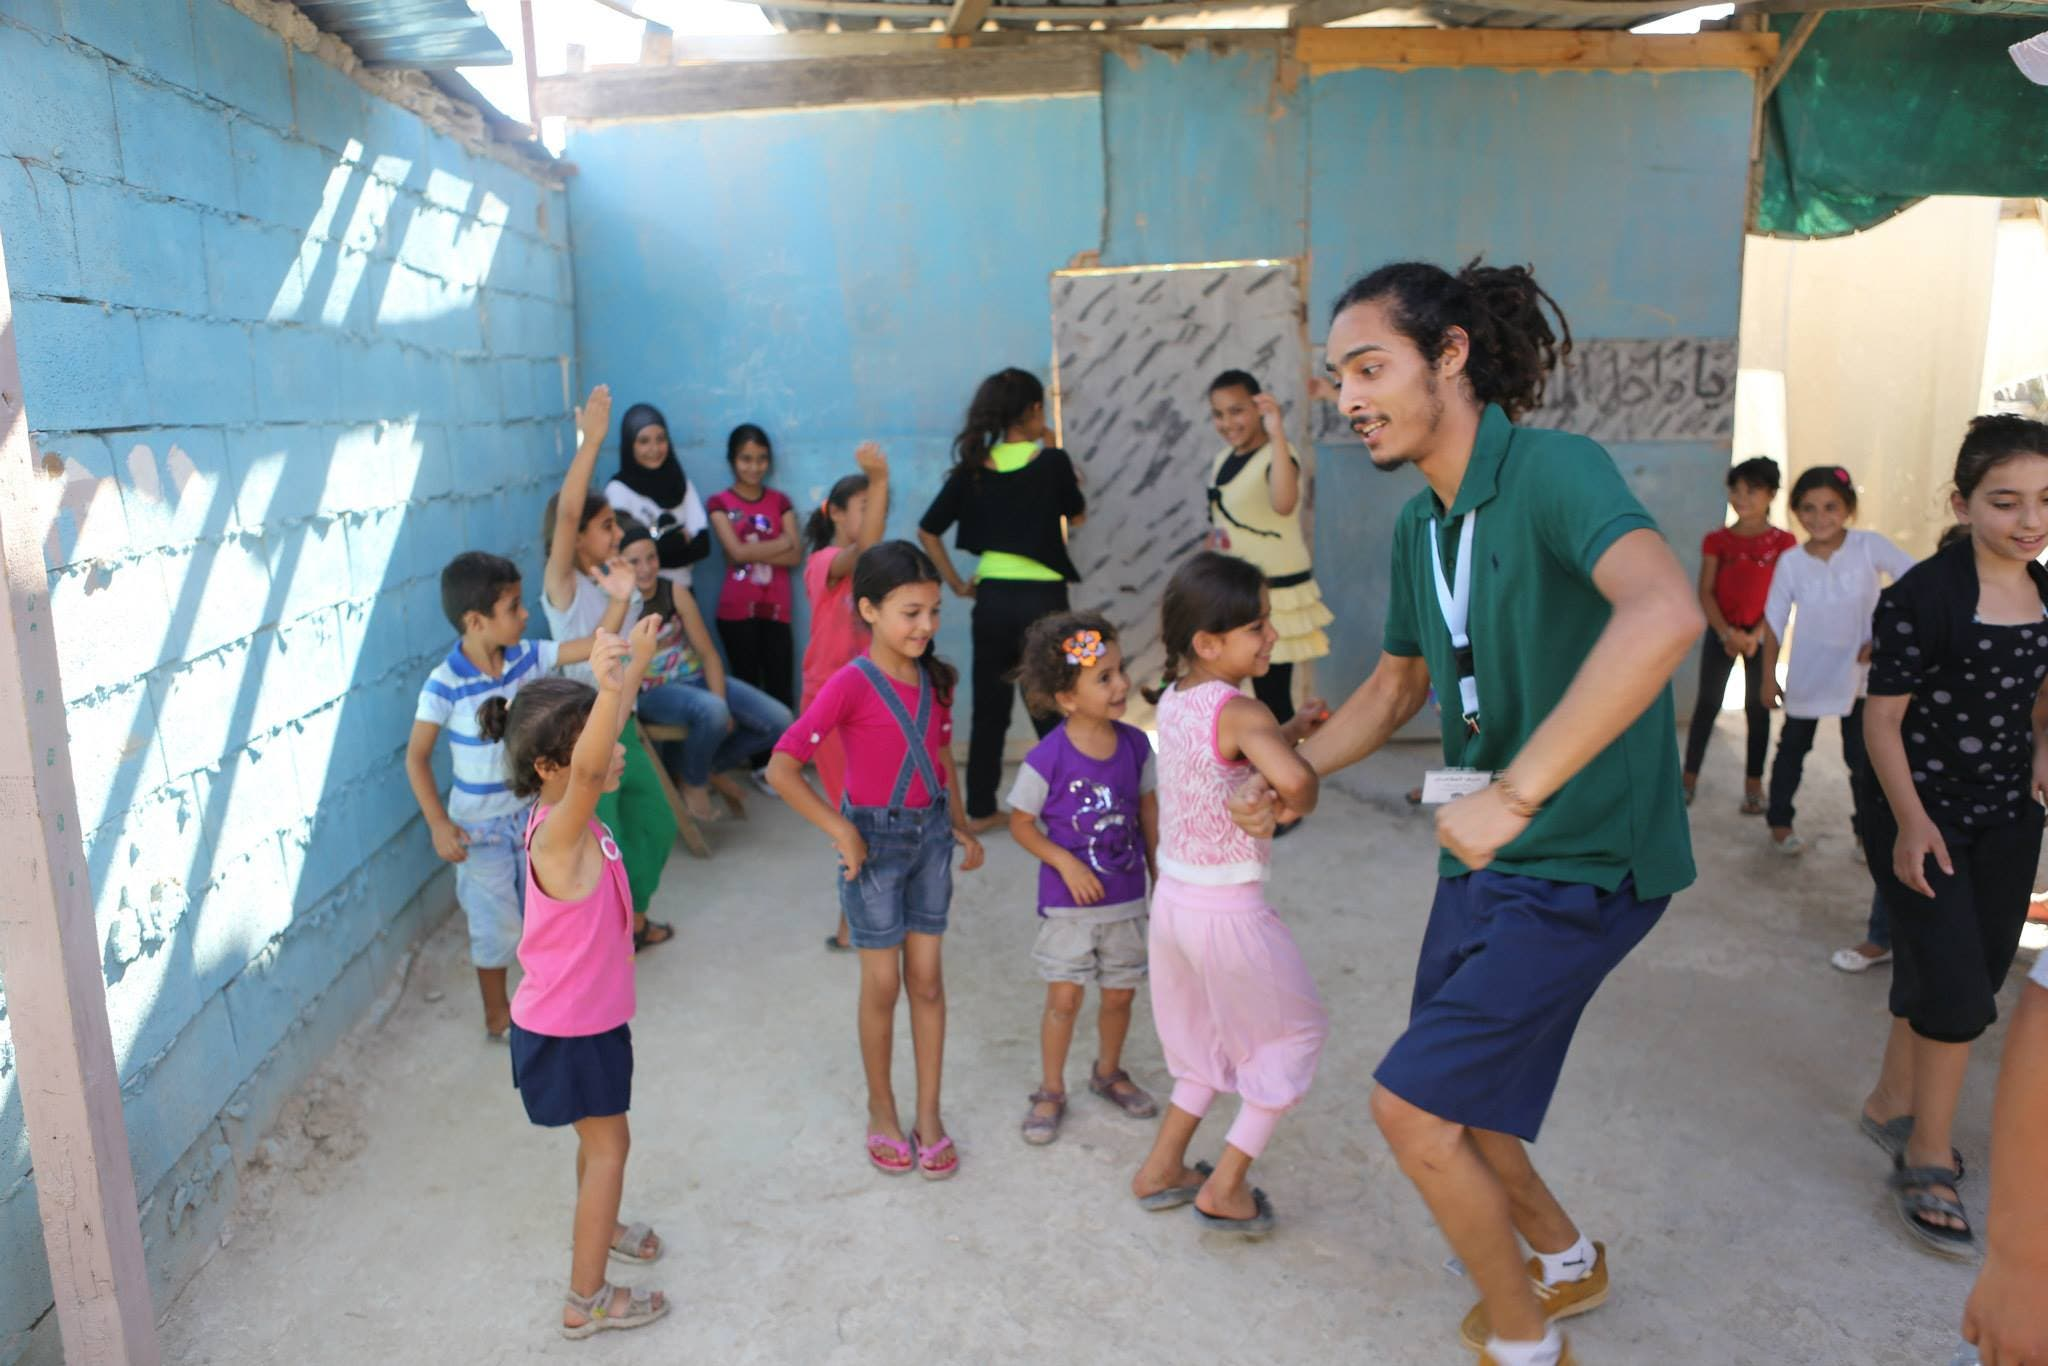 Seifeddine Jlassi entertaining children at a Syrian refugee camp in Tripoli, Lebanon. (Courtesy: Fanni Raghman Anni)